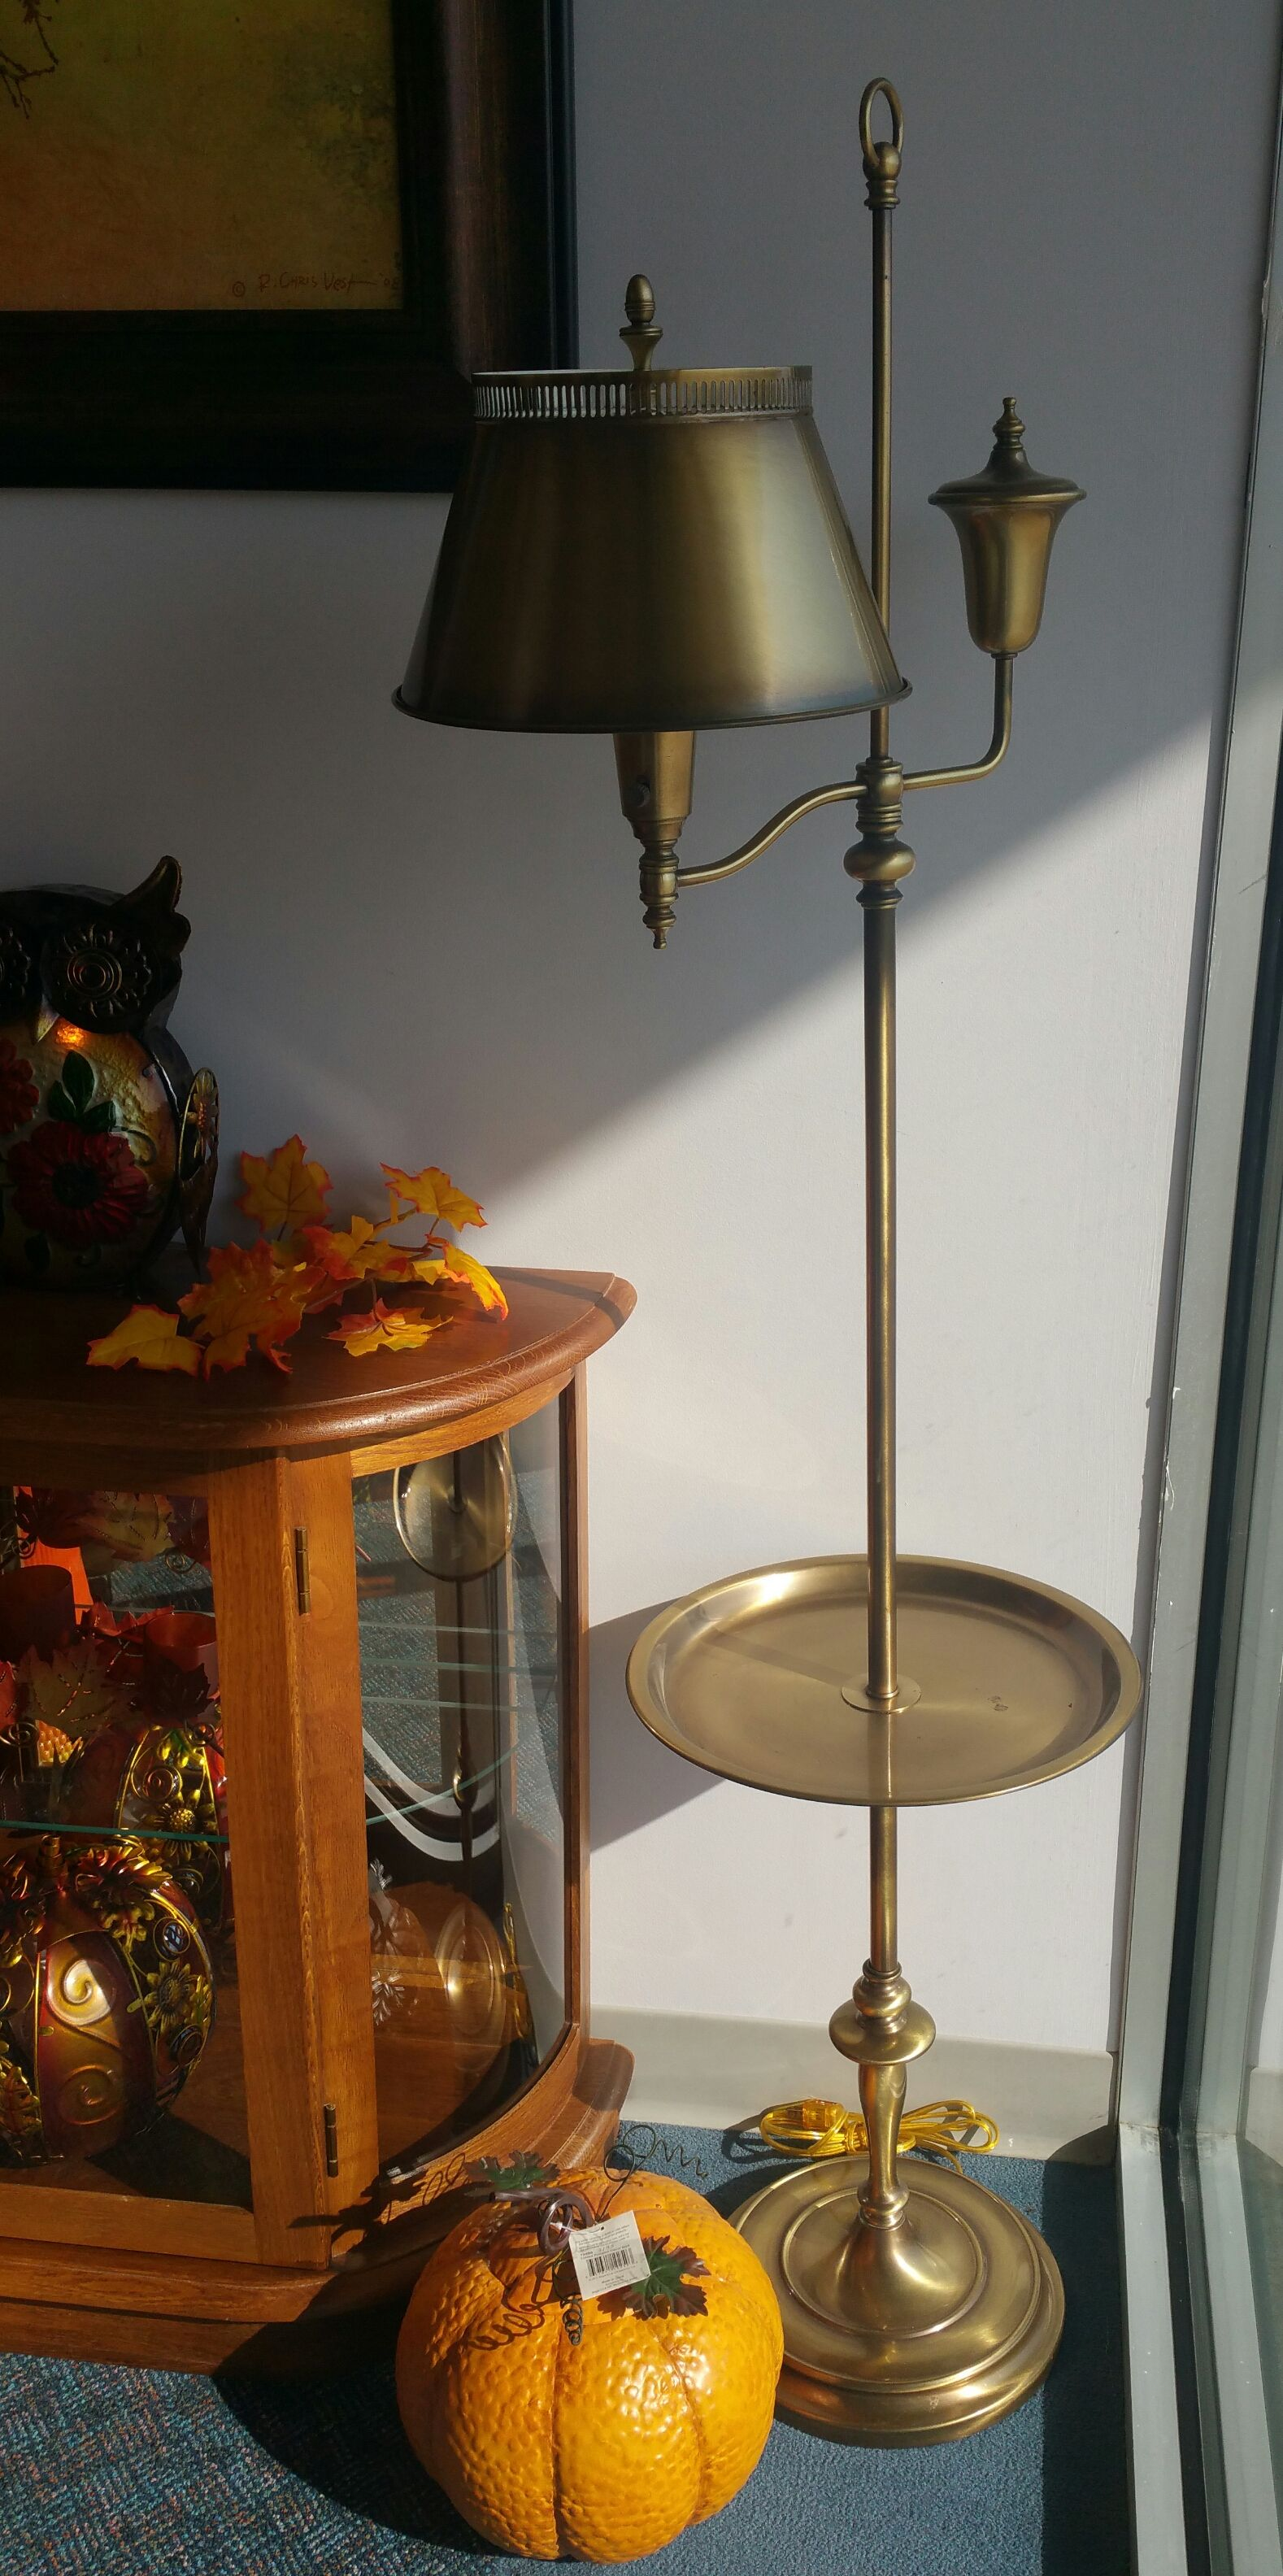 Antique brass tole floor lamp with attached tray. Still has